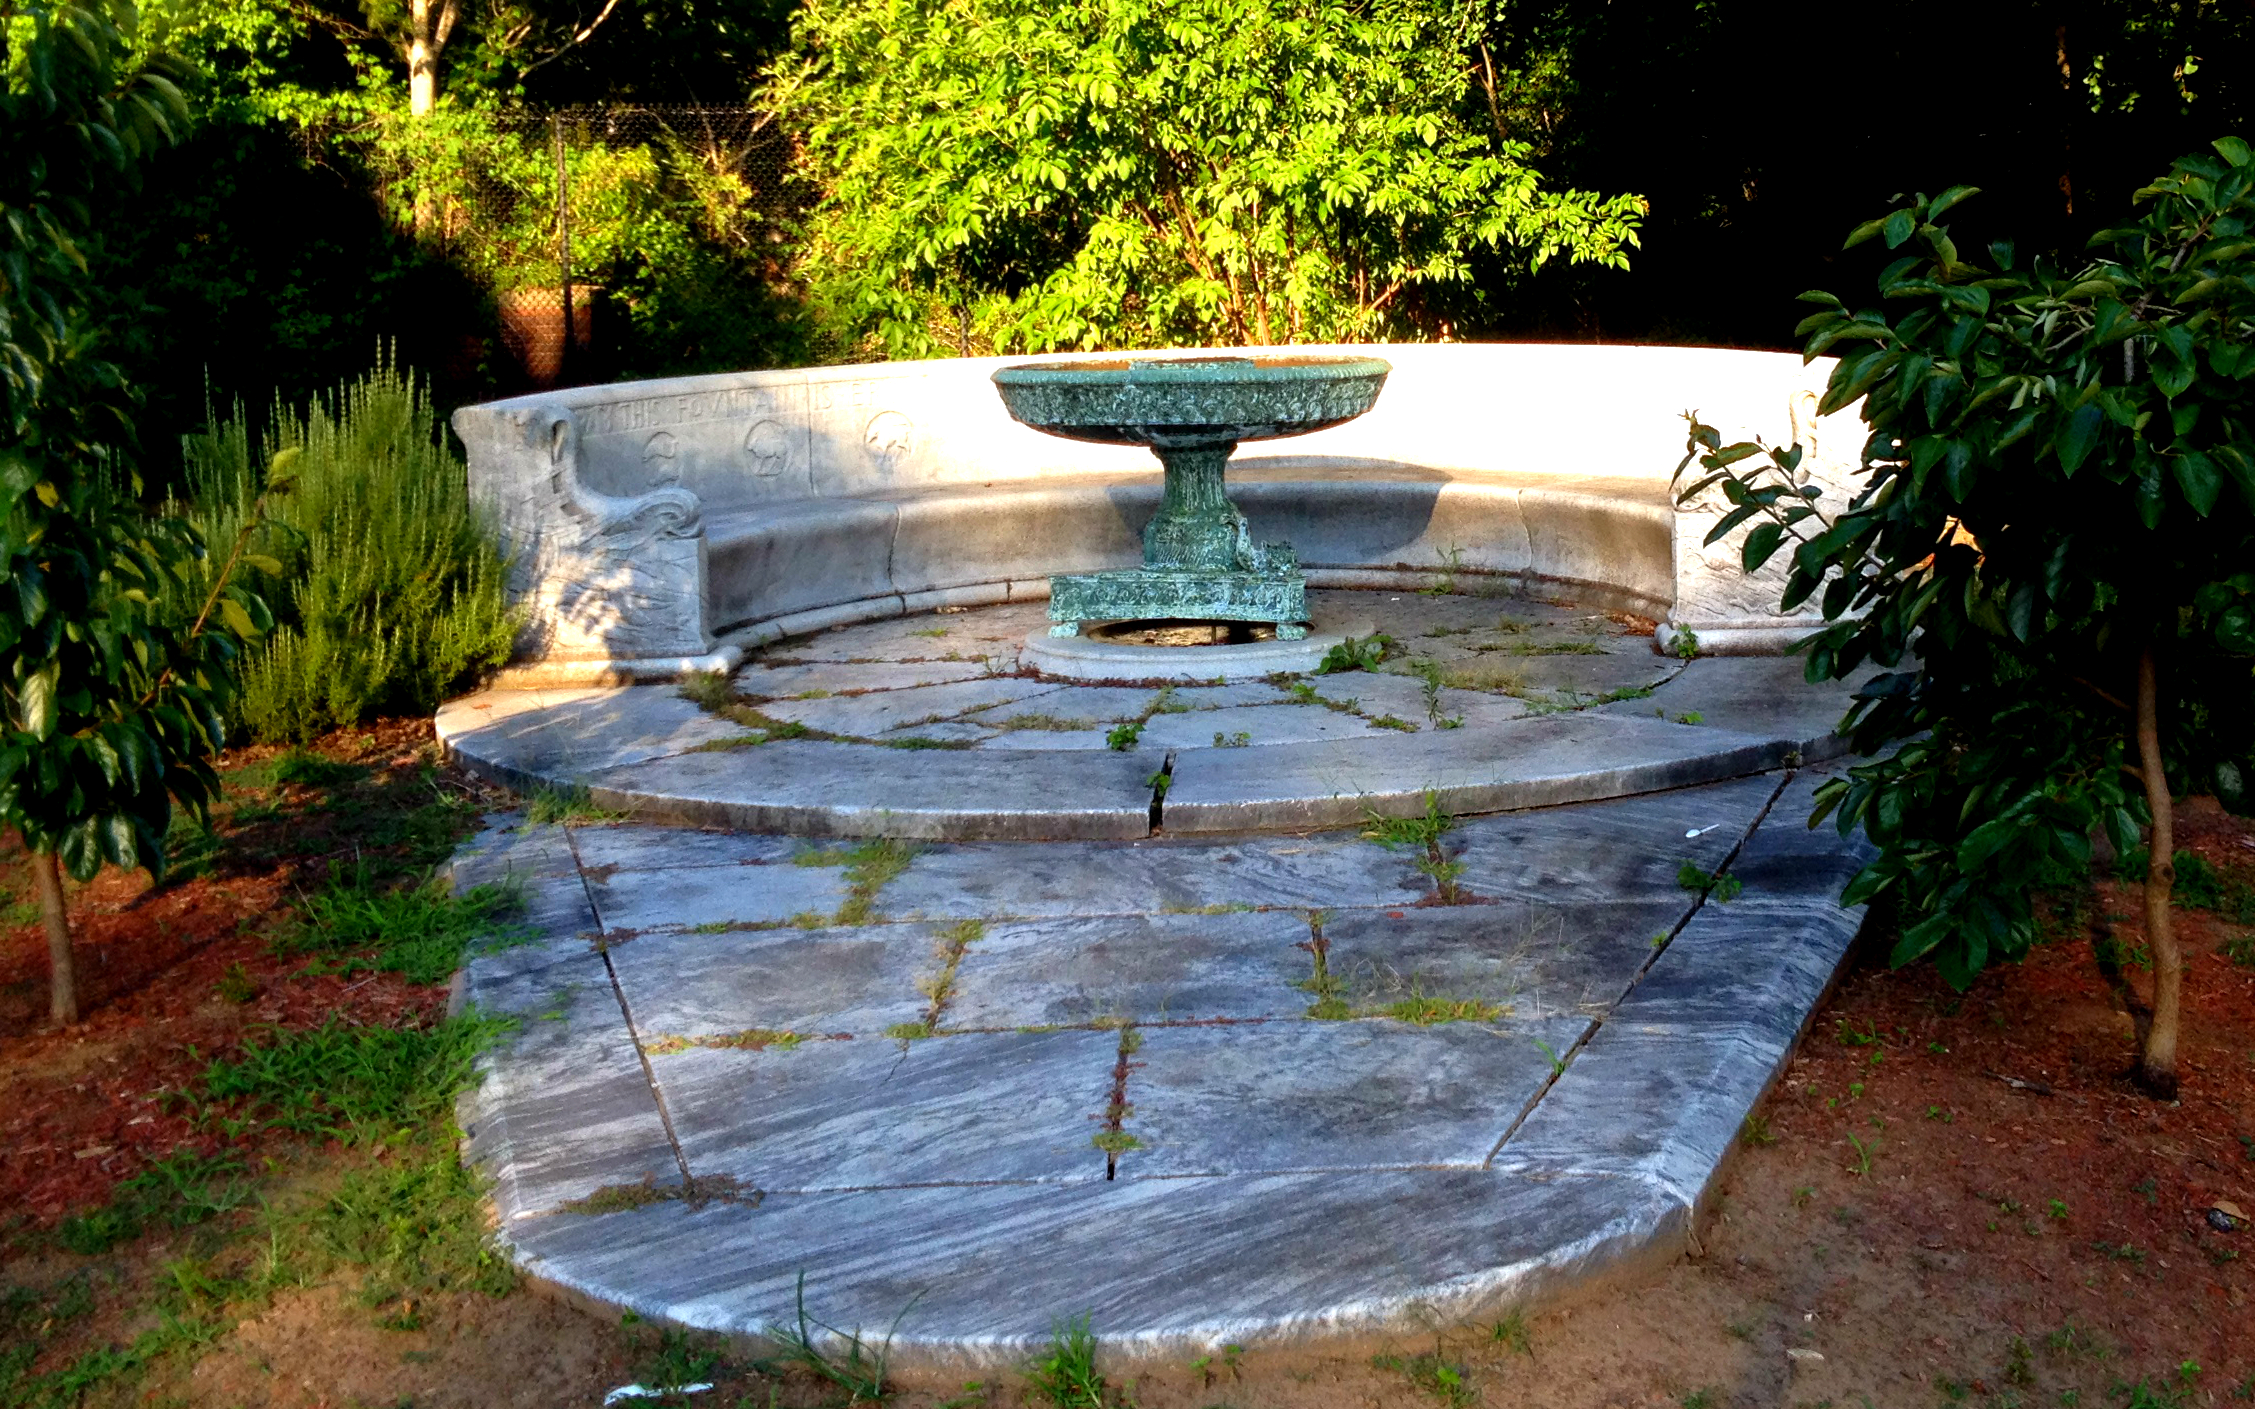 The Erskine Memorial Fountain in Grant Park - History Atlanta 2014